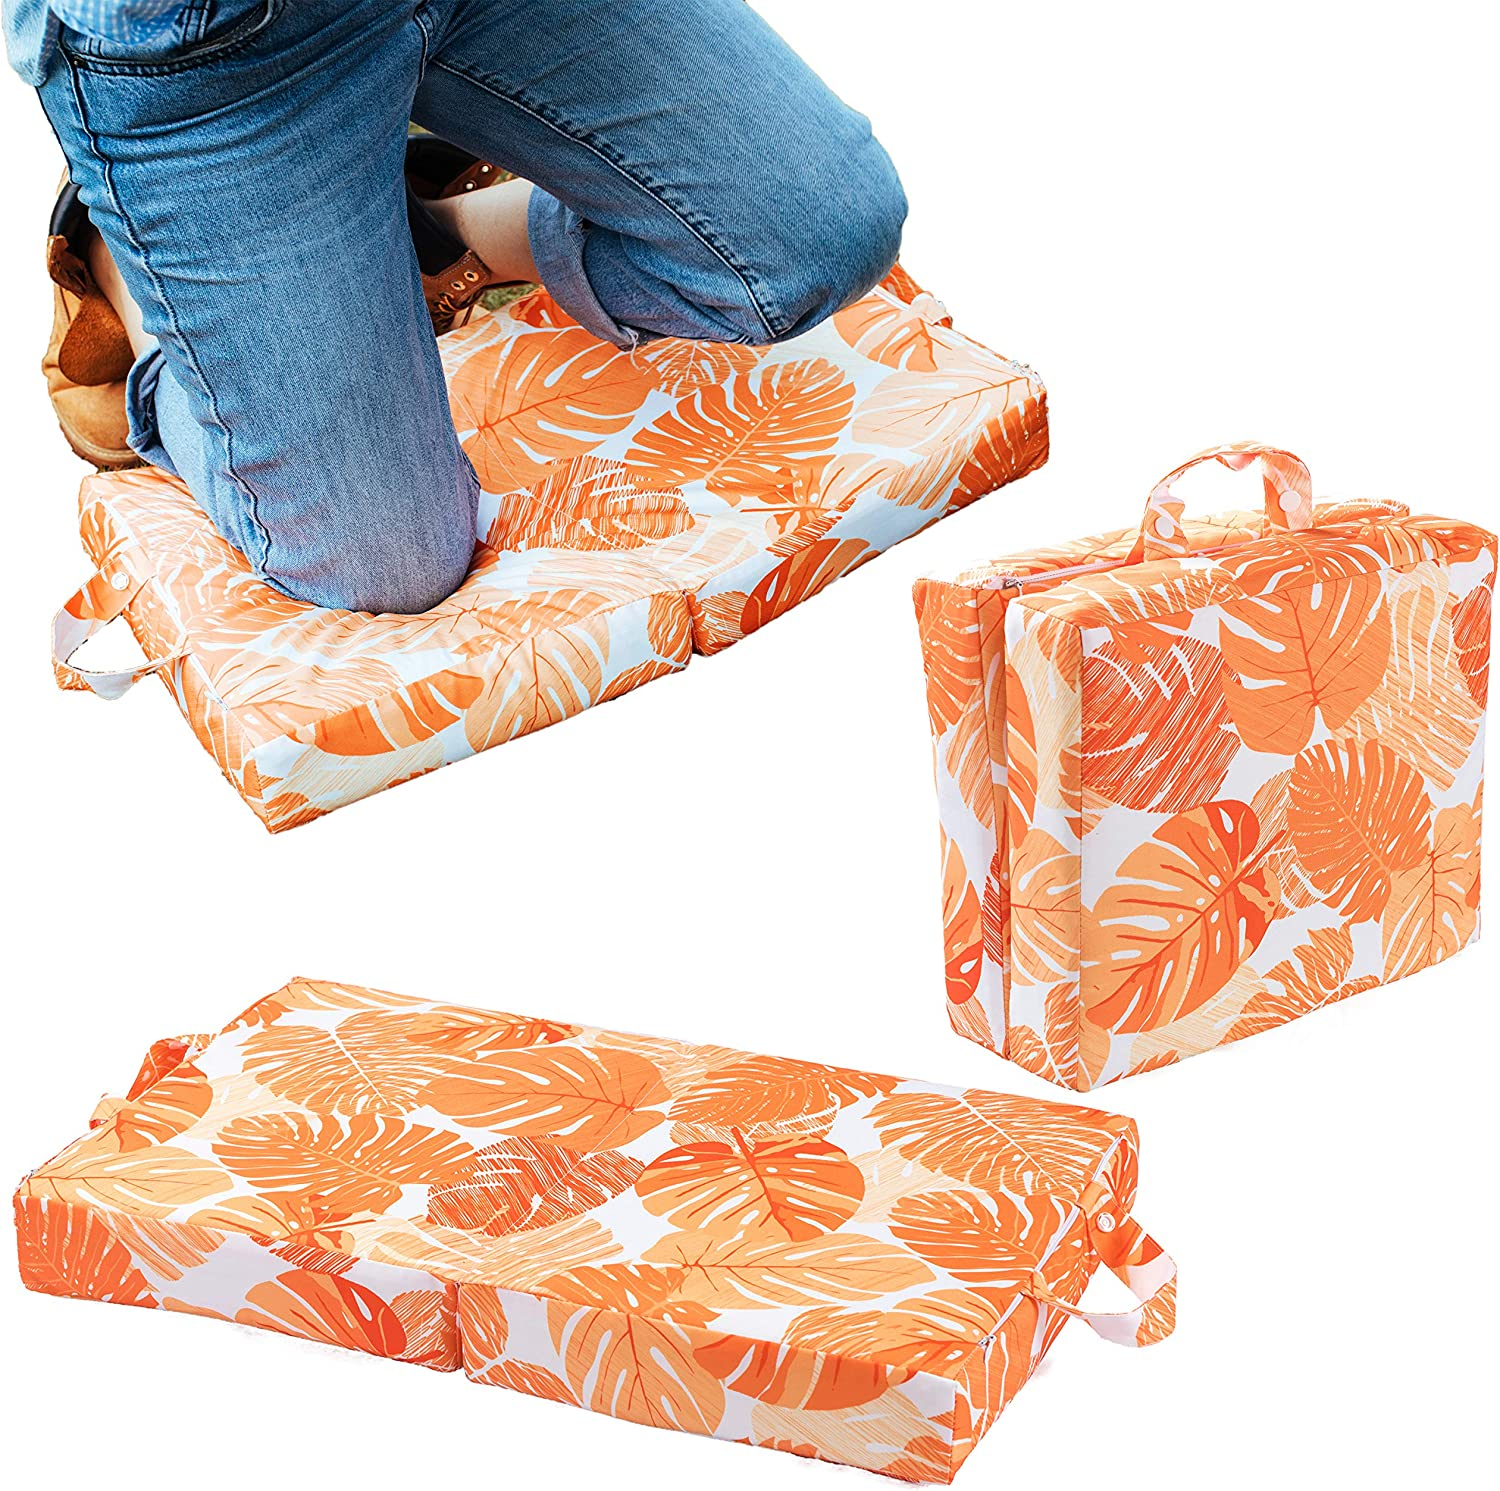 Etc Blue Raise Your Game Kneeling Pad Knee Protector Cushion Pillow for Garden Work Exercise Household and Outdoor Chores Large Thick Kneeler Foam Support for Gardening